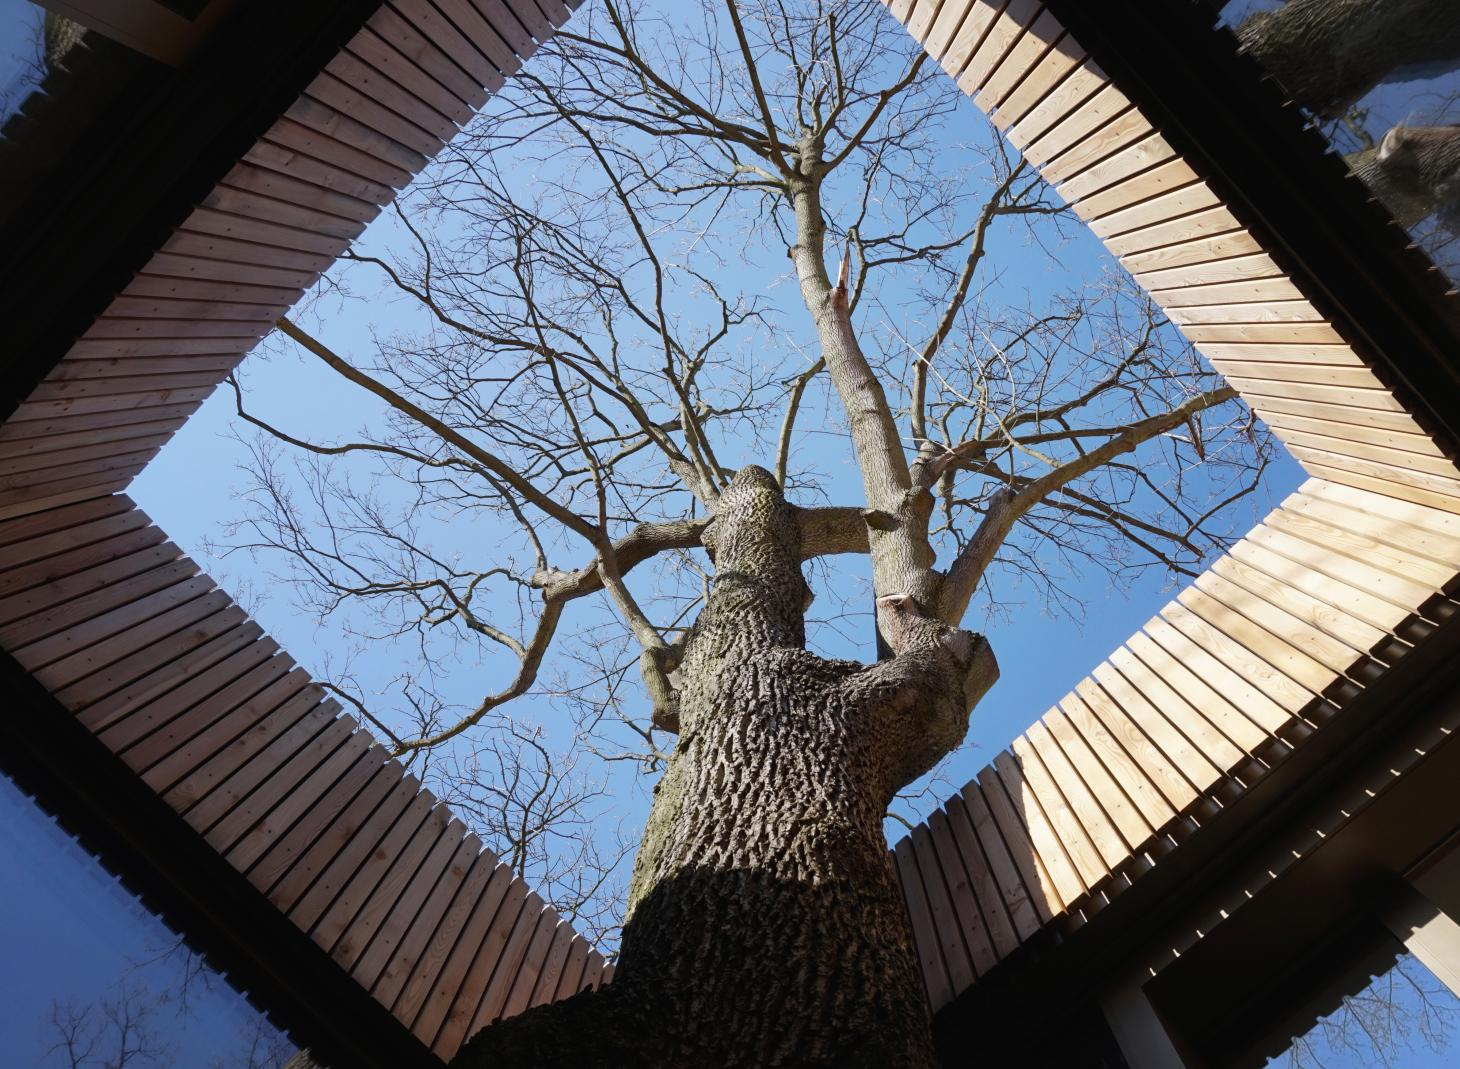 The House on the Lake was designed around an existing maple tree